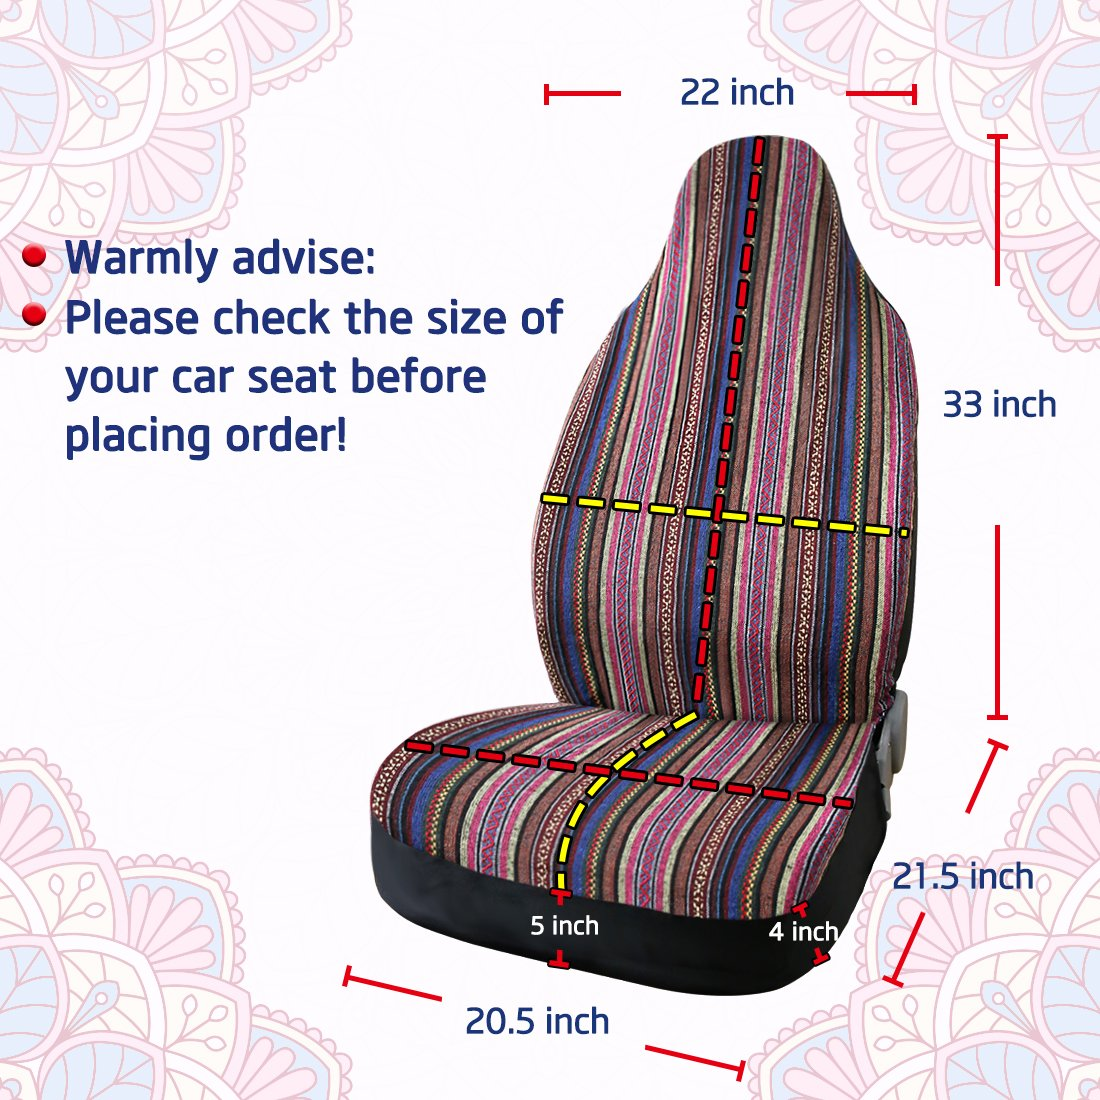 uxcell Universal Baja Blanket Ethnic Style Bucket Seat Cover for Car Auto Automotive